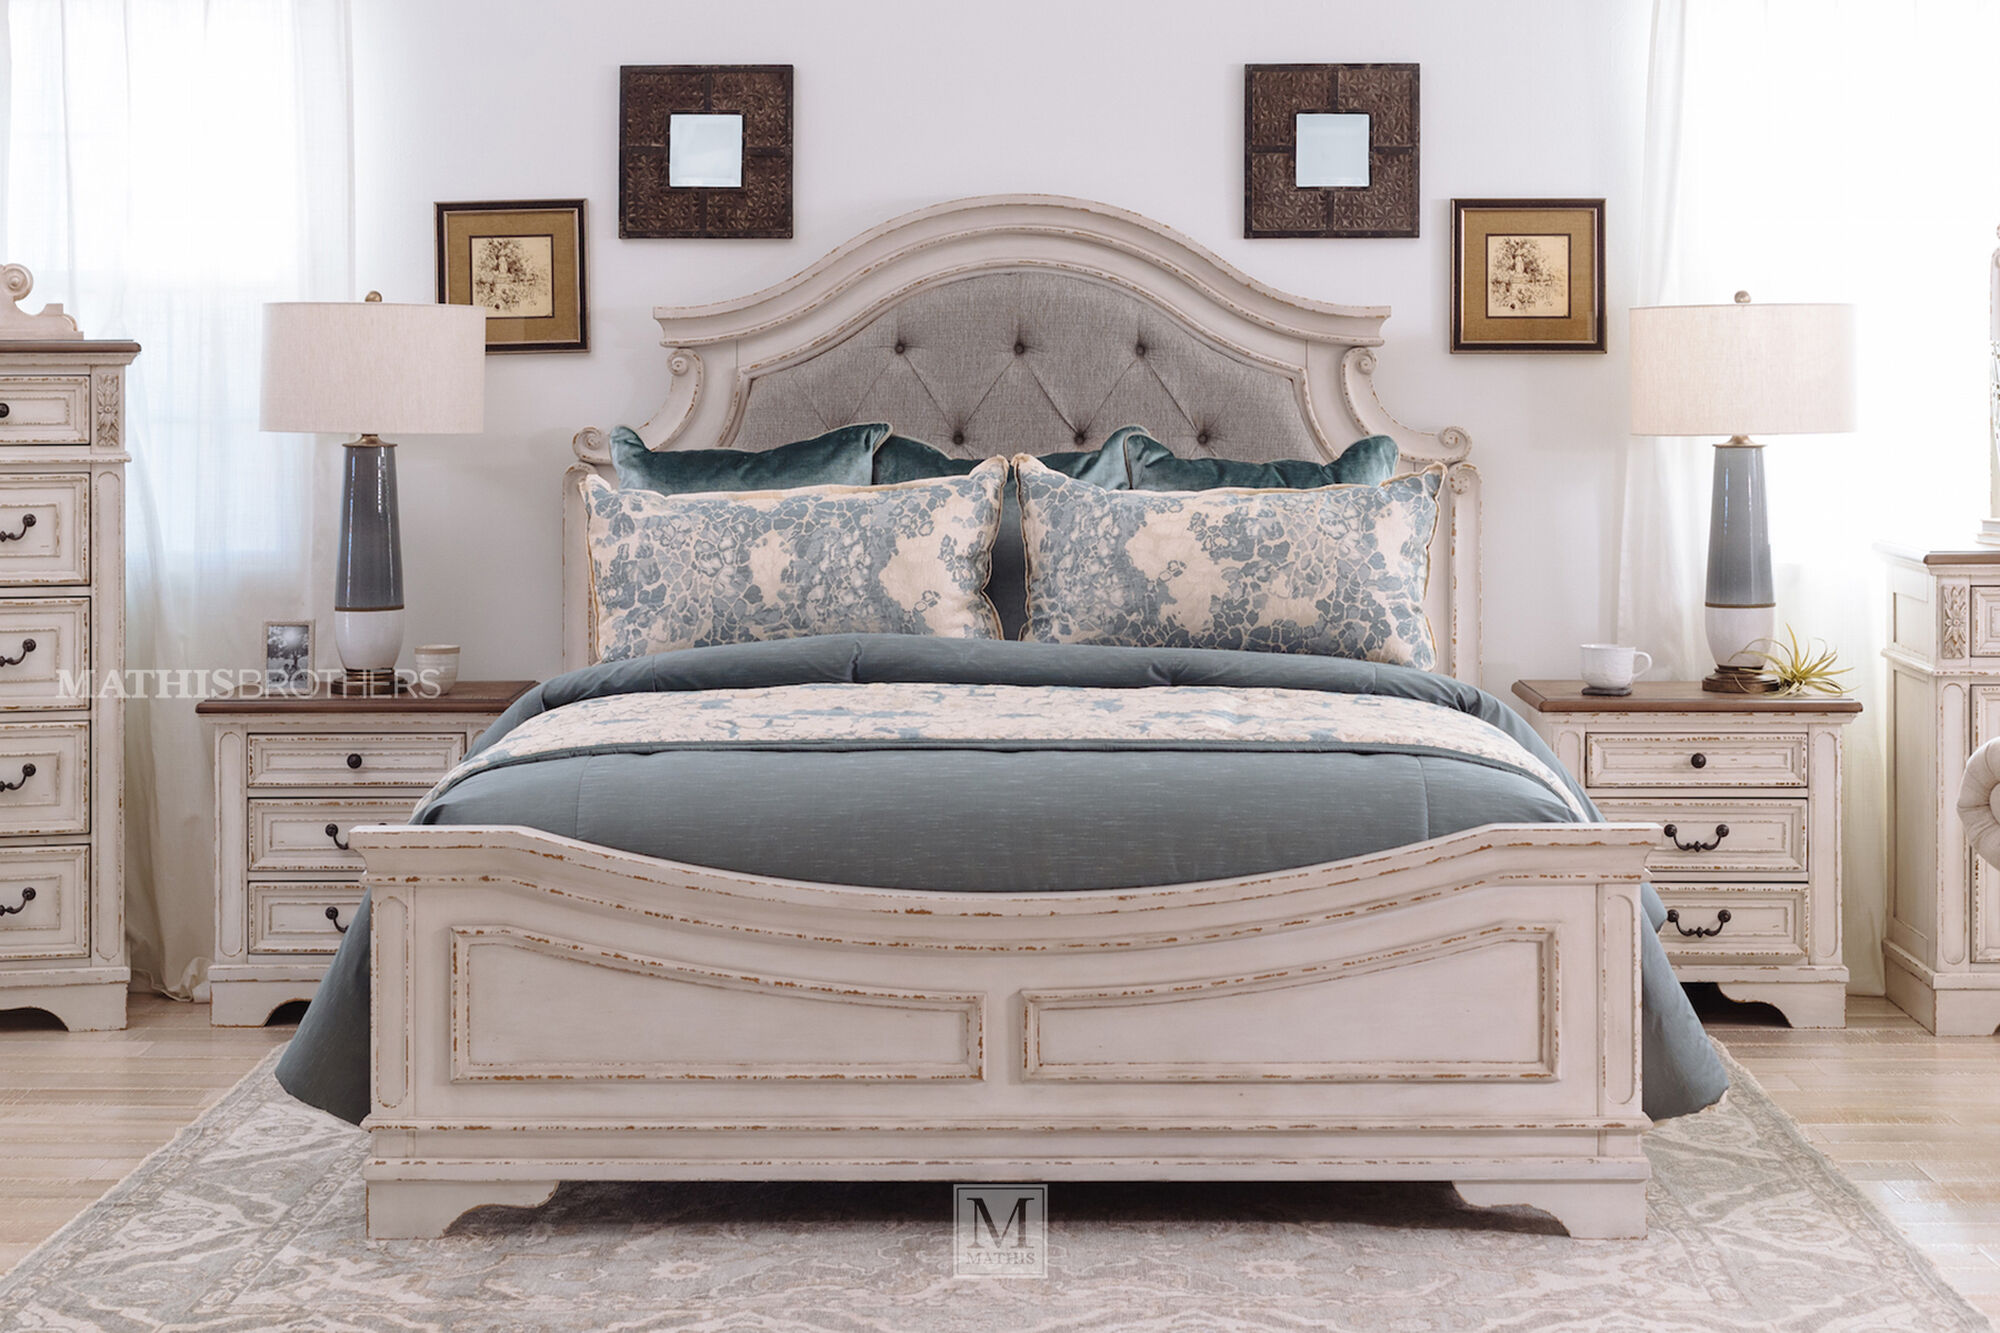 Traditional Panel Bed in Chipped White   Mathis Brothers ...